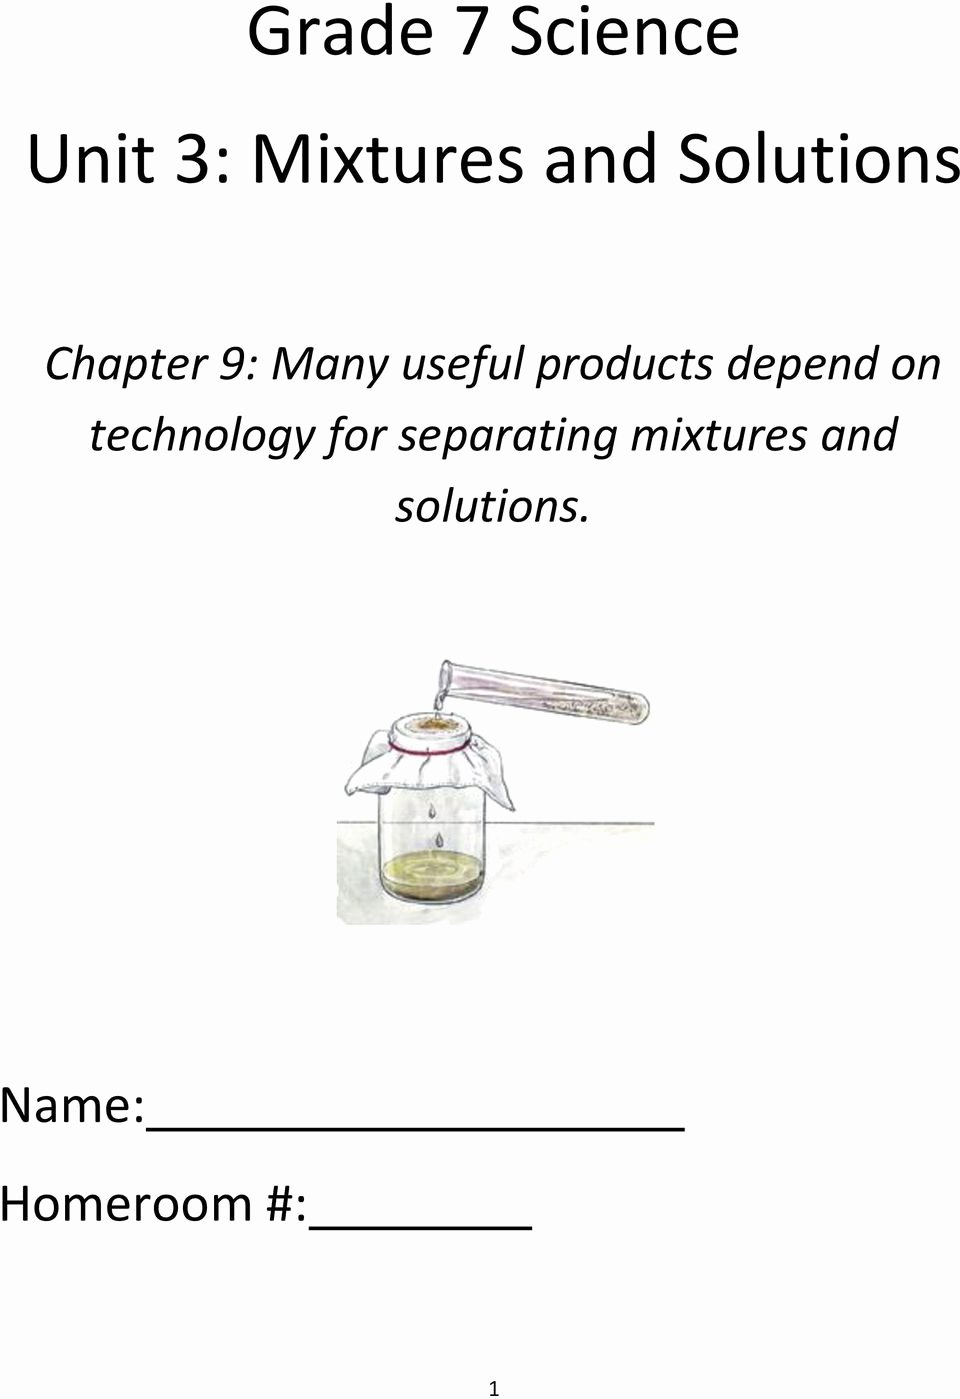 Mixtures and solutions Worksheet Answers Ideas Grade 7 Science Unit 3 Mixtures and solutions Pdf Free